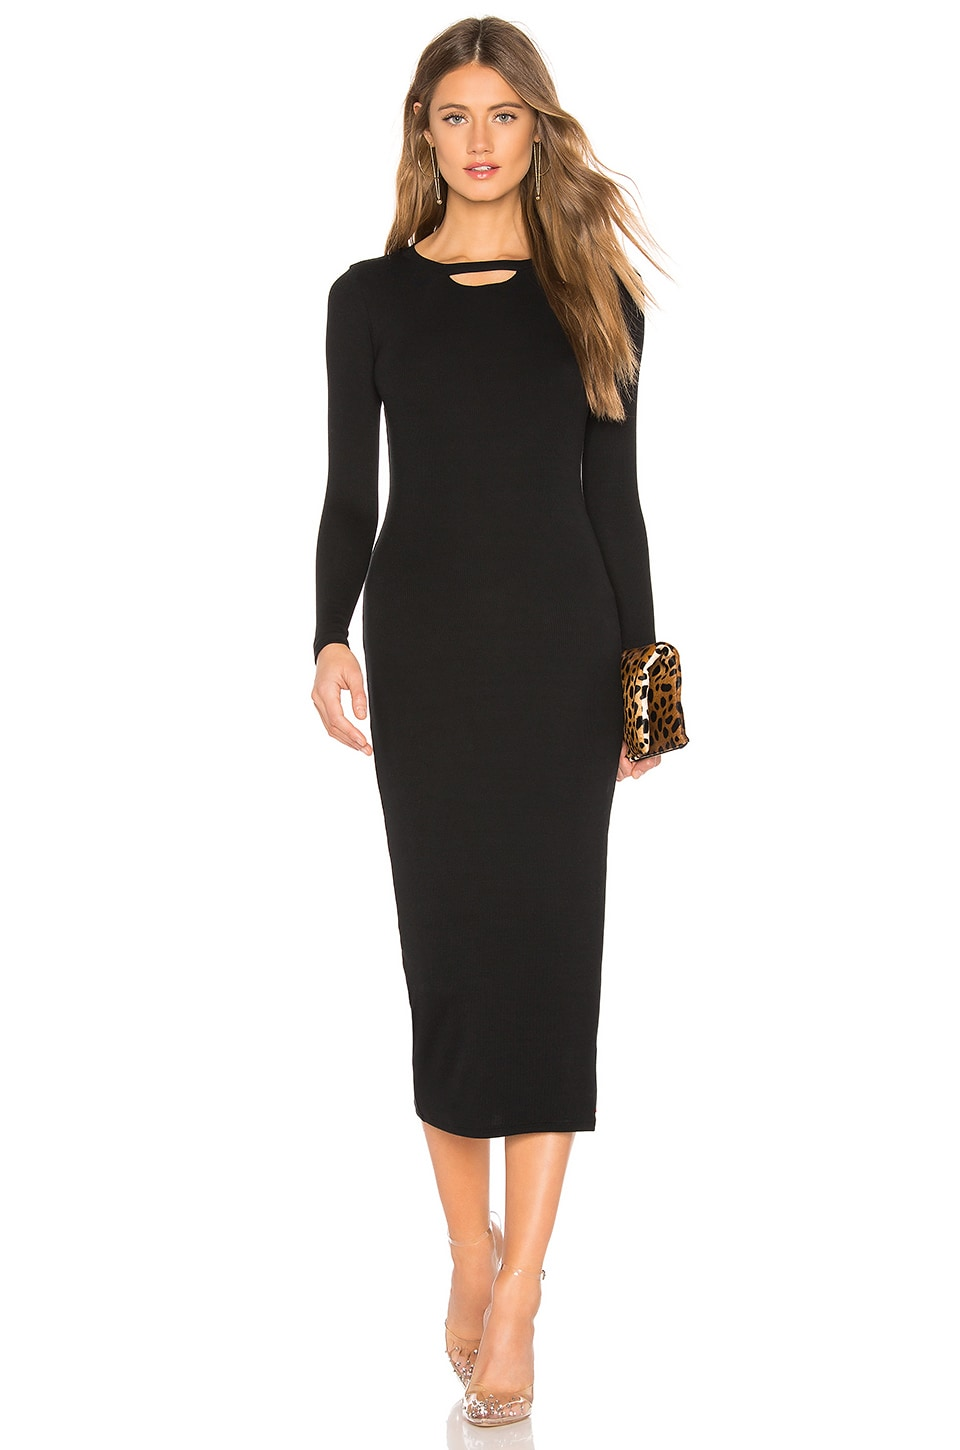 N:philanthropy N:PHILANTHROPY ATHENS MIDI DRESS IN BLACK.